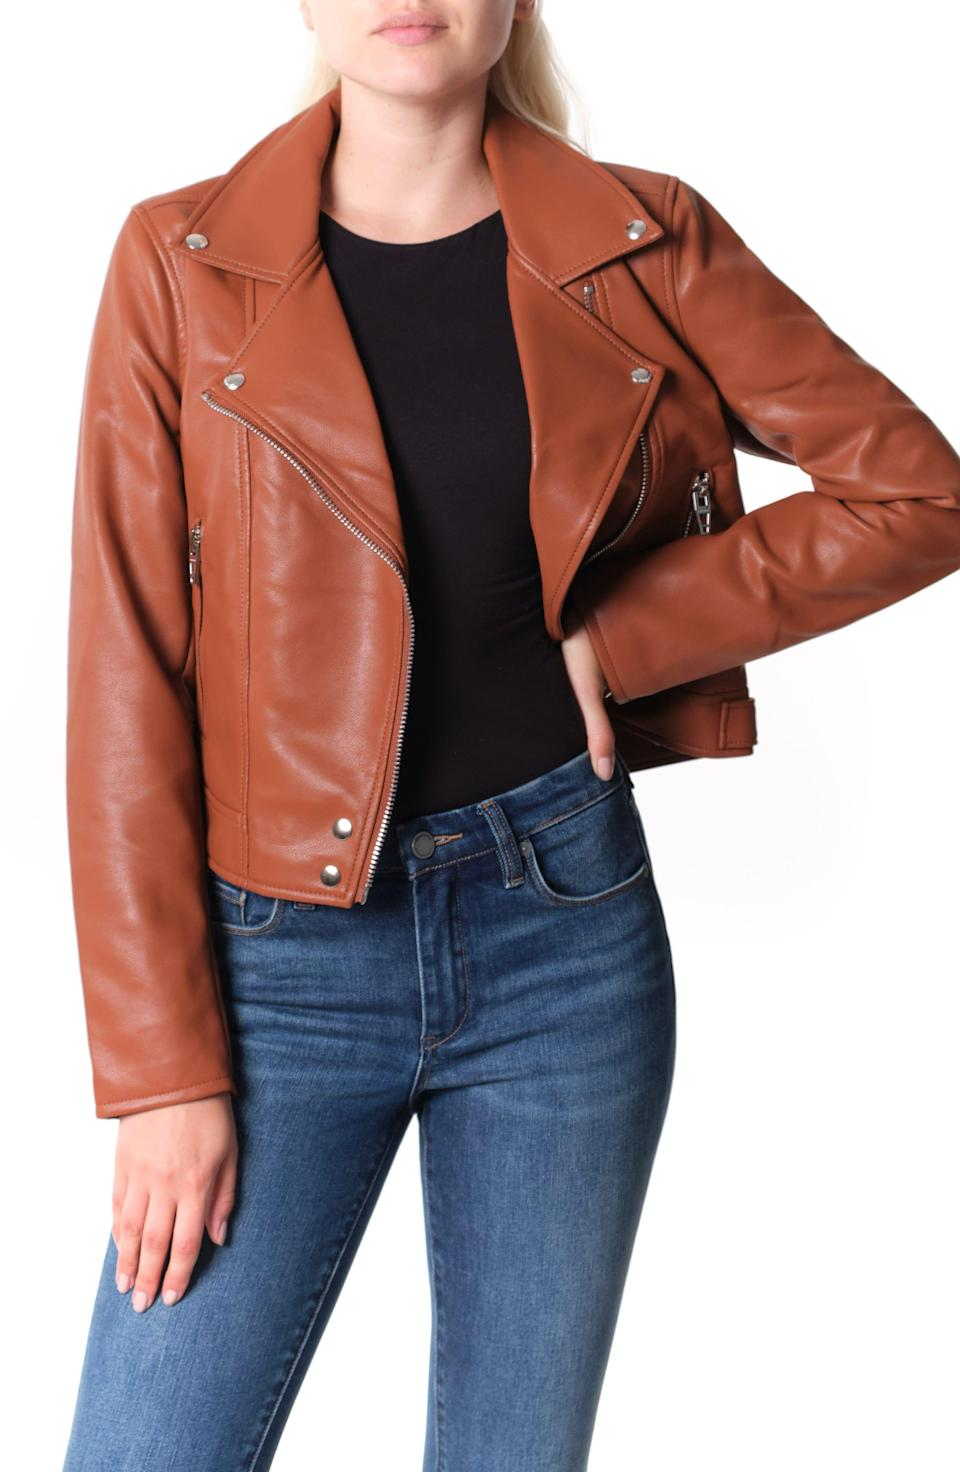 """<p><strong>BLANKNYC</strong></p><p>nordstrom.com</p><p><strong>$56.90</strong></p><p><a href=""""https://go.redirectingat.com?id=74968X1596630&url=https%3A%2F%2Fwww.nordstrom.com%2Fs%2Fblanknyc-good-vibes-faux-leather-moto-jacket%2F5573688&sref=https%3A%2F%2Fwww.townandcountrymag.com%2Fstyle%2Ffashion-trends%2Fg33595537%2Fnordstrom-anniversary-sale-2020-womens-clothing%2F"""" rel=""""nofollow noopener"""" target=""""_blank"""" data-ylk=""""slk:Shop Now"""" class=""""link rapid-noclick-resp"""">Shop Now</a></p><p><em>Originally: $98</em></p>"""